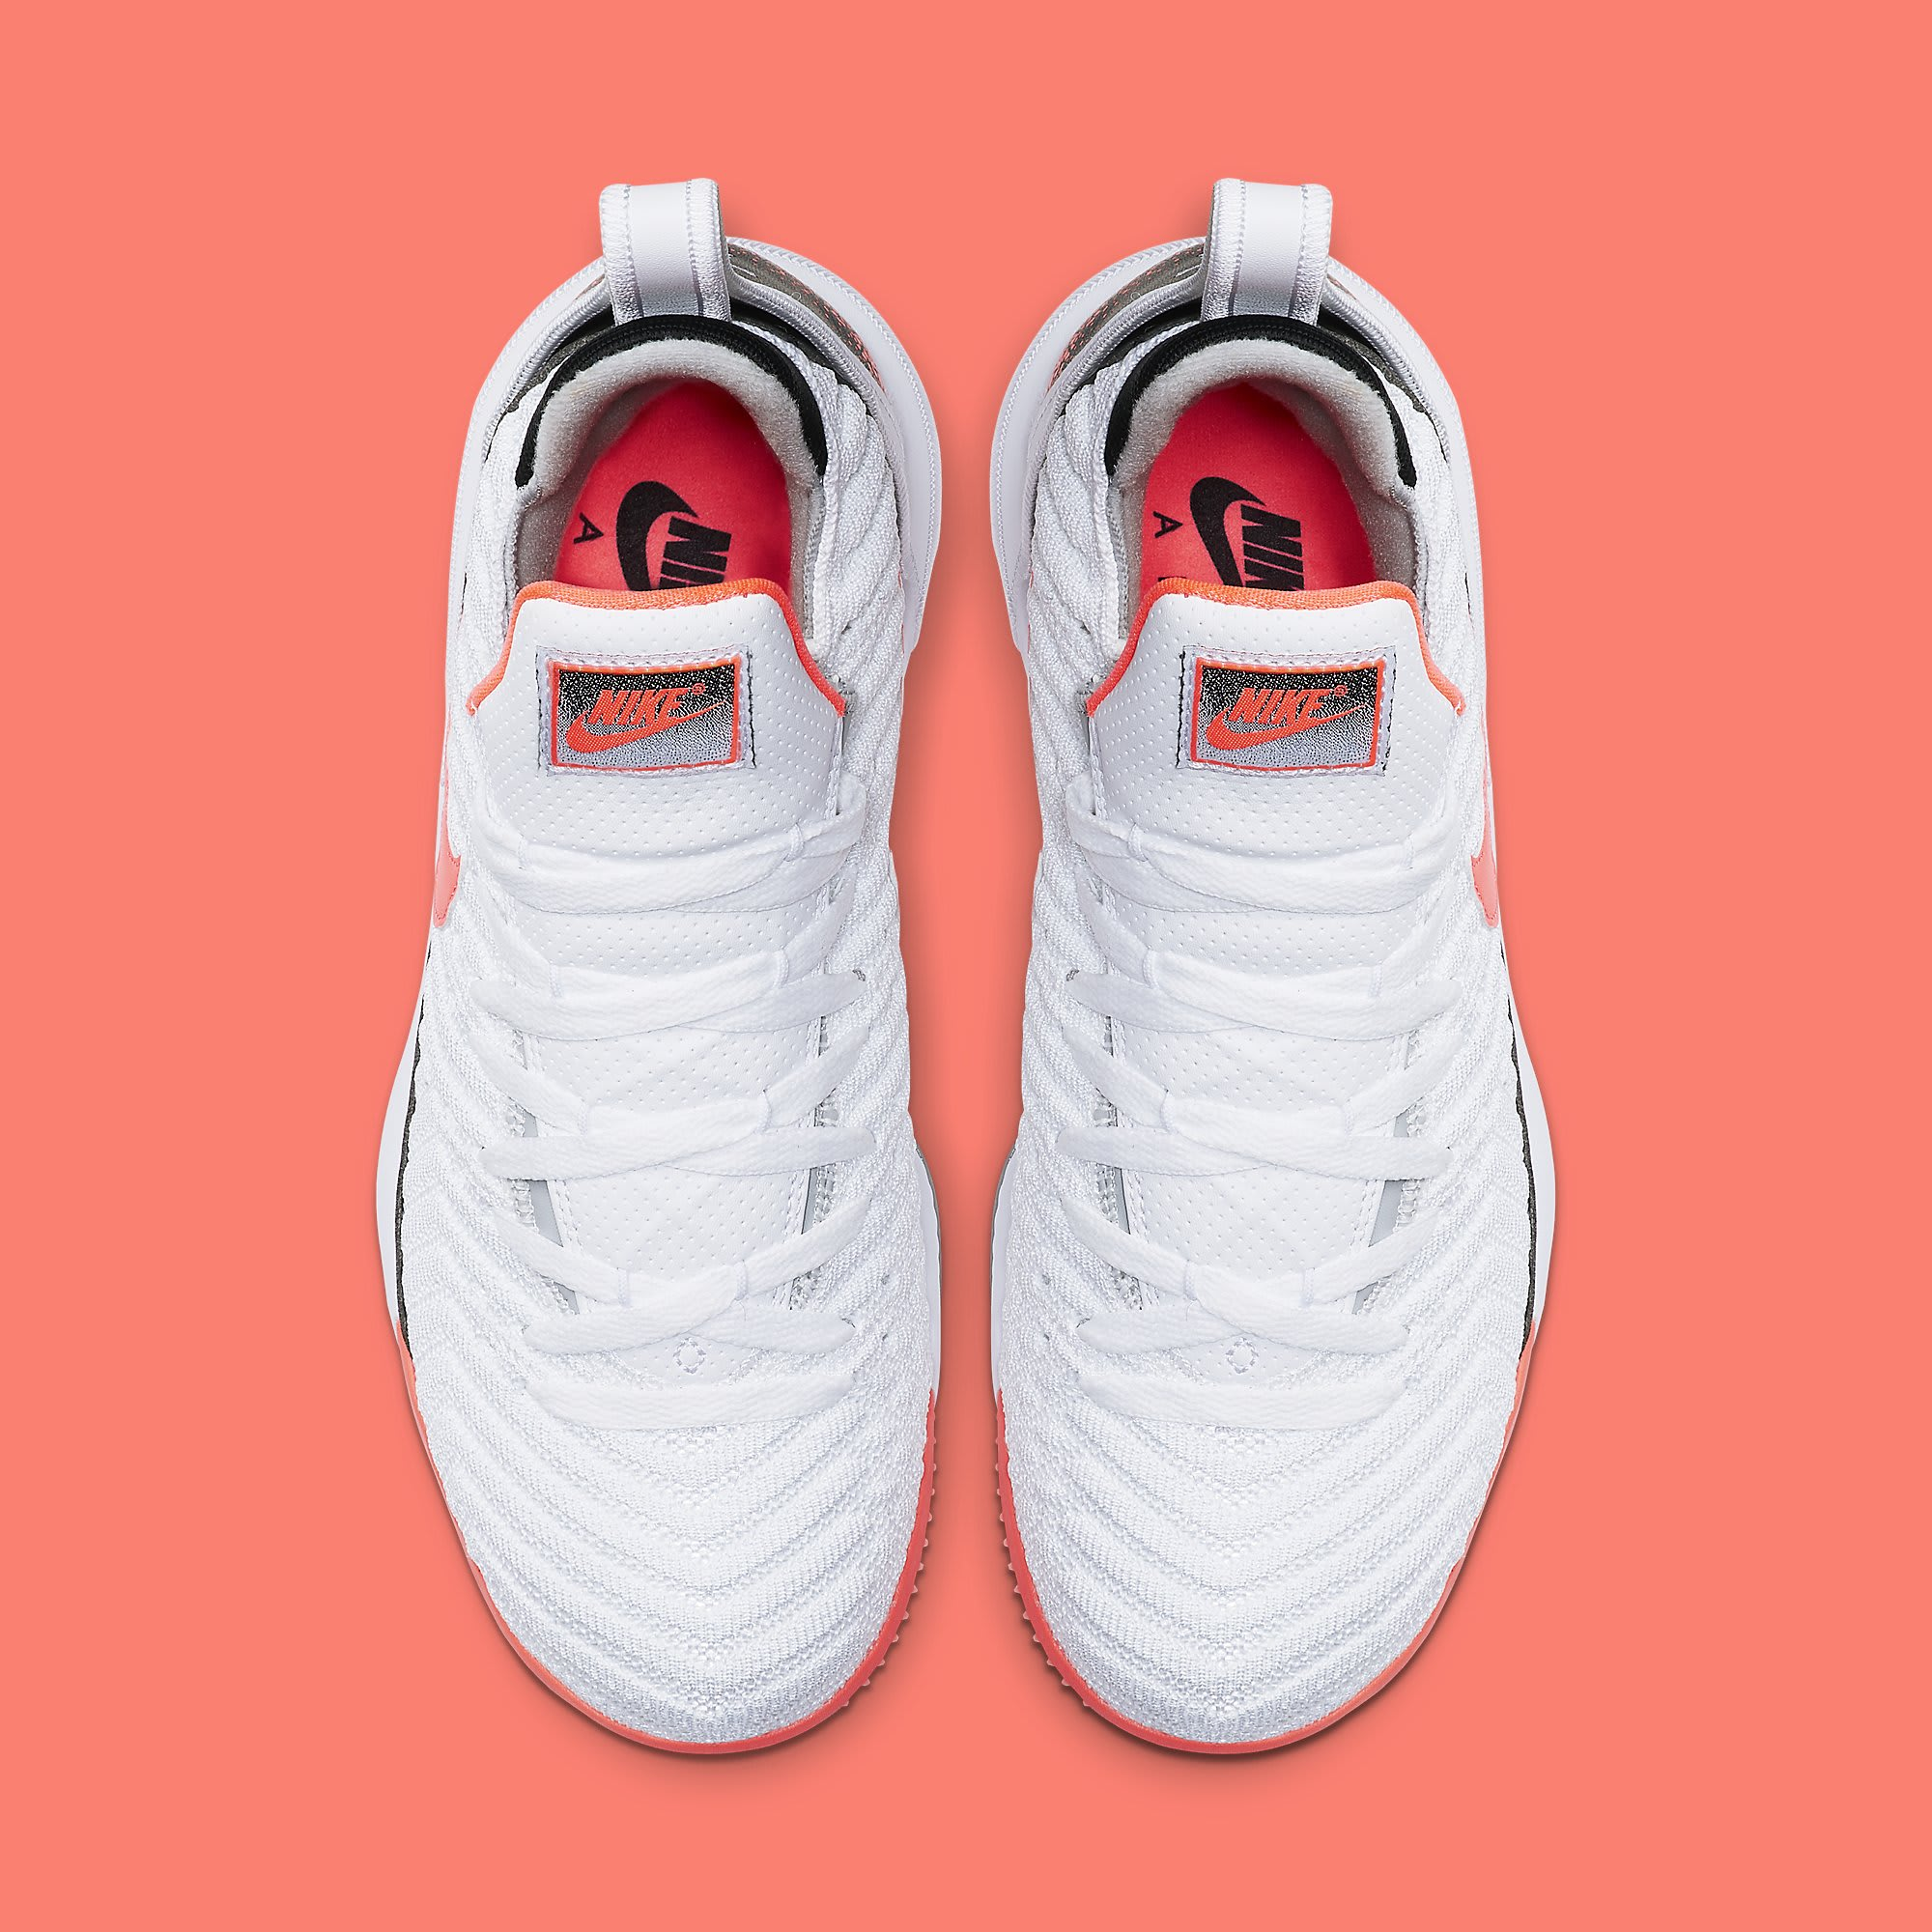 Nike LeBron 16 'Hot Lava' White CI1521-100 Top